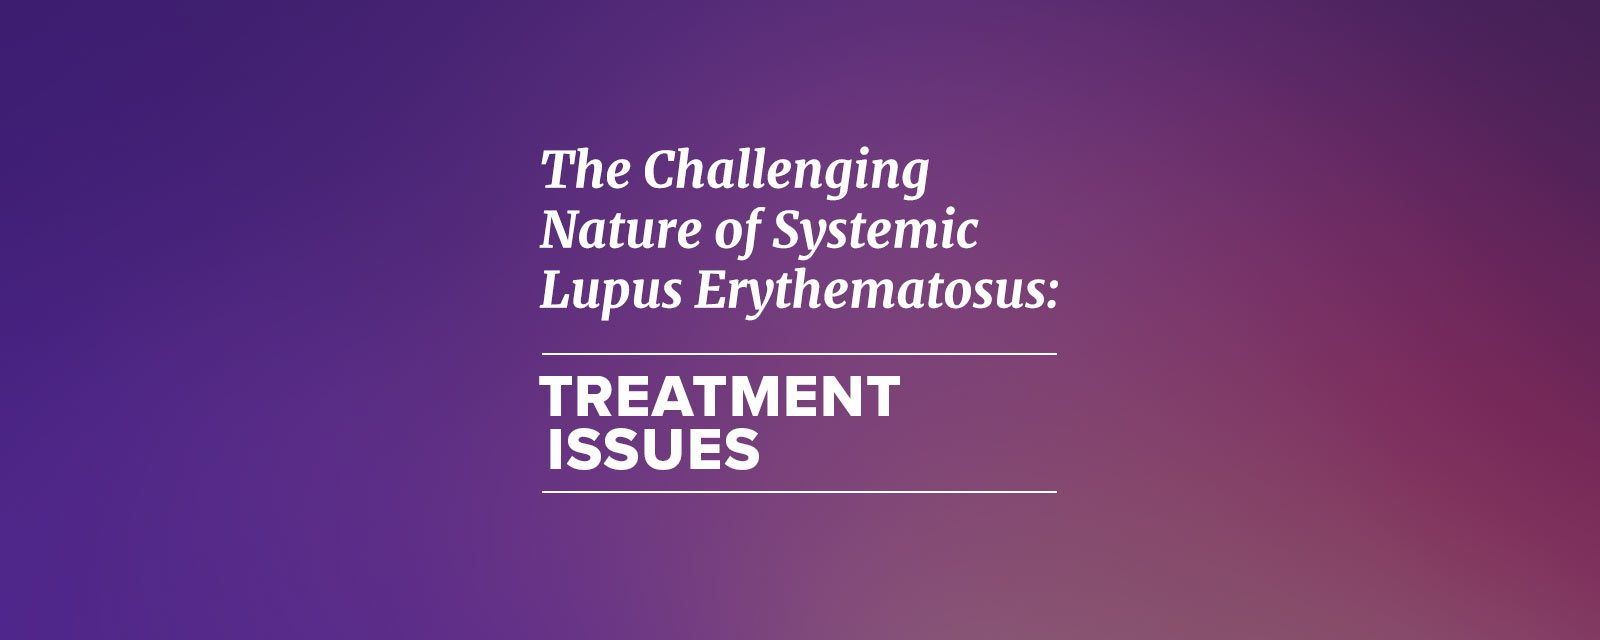 The Challenging Nature of Systemic Lupus Erythematosus: Treatment Issues